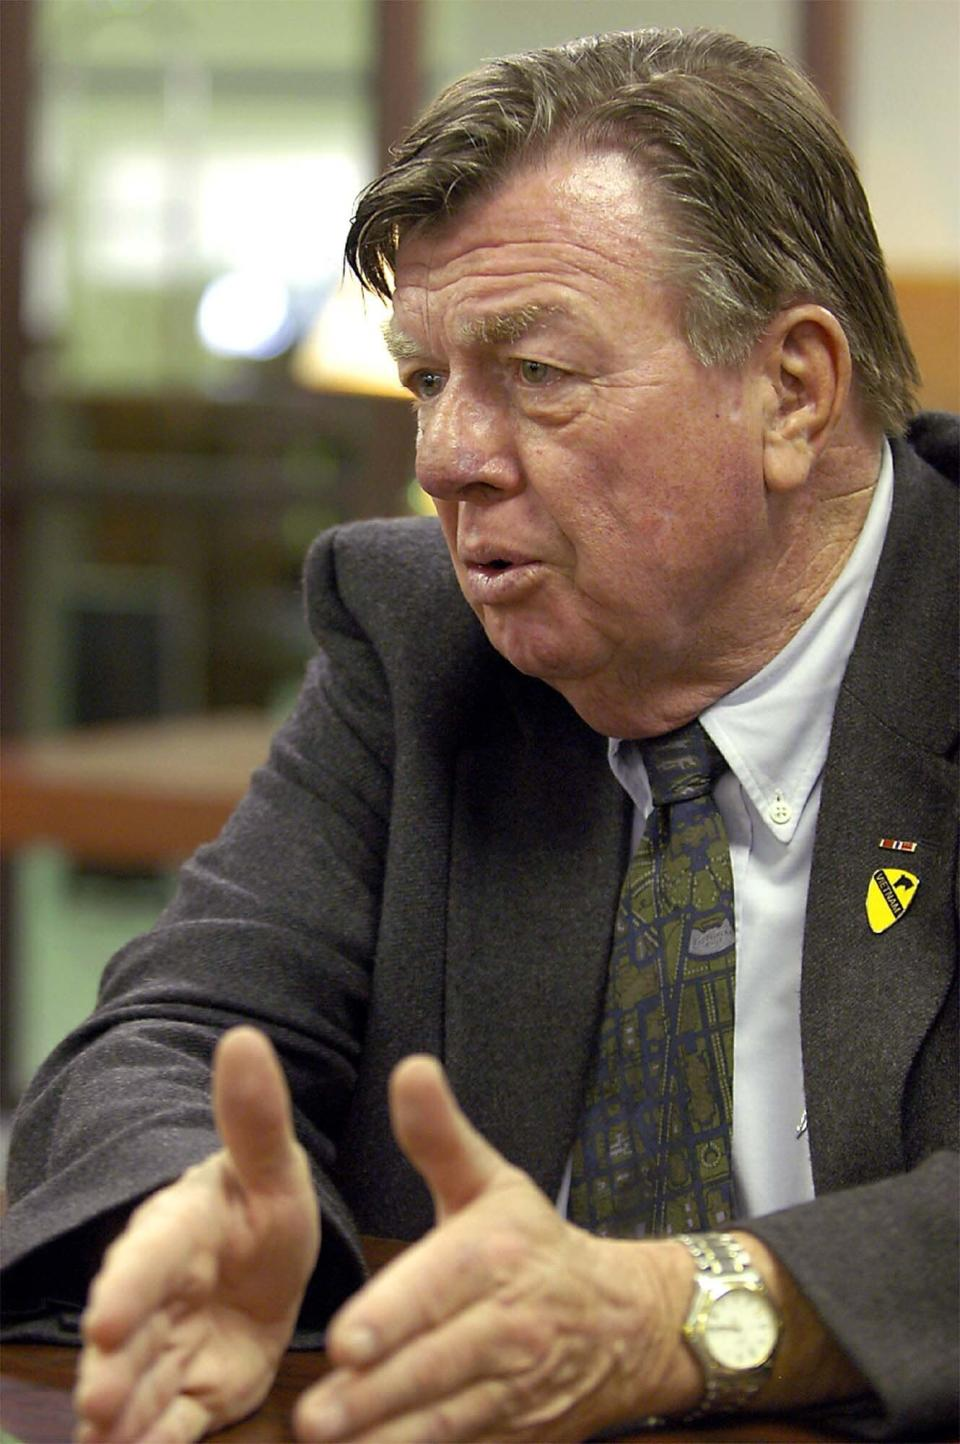 """FILE- Joe Galloway, war correspondant and co-author of """"We Were Soldiers Once ... and Young, speaks during an appearance at the New Mexico Military Institute in Roswell, N.M., on Feb. 6, 2004. Galloway, best known for his book recounting a pivotal battle in the Vietnam War that was made into a Hollywood movie, has died. He was 79. His wife, Grace Galloway, confirmed to AP that he died Wednesday morning after being hospitalized near their home in North Carolina. (Andrew Poertner/Roswell Daily Record via AP)"""